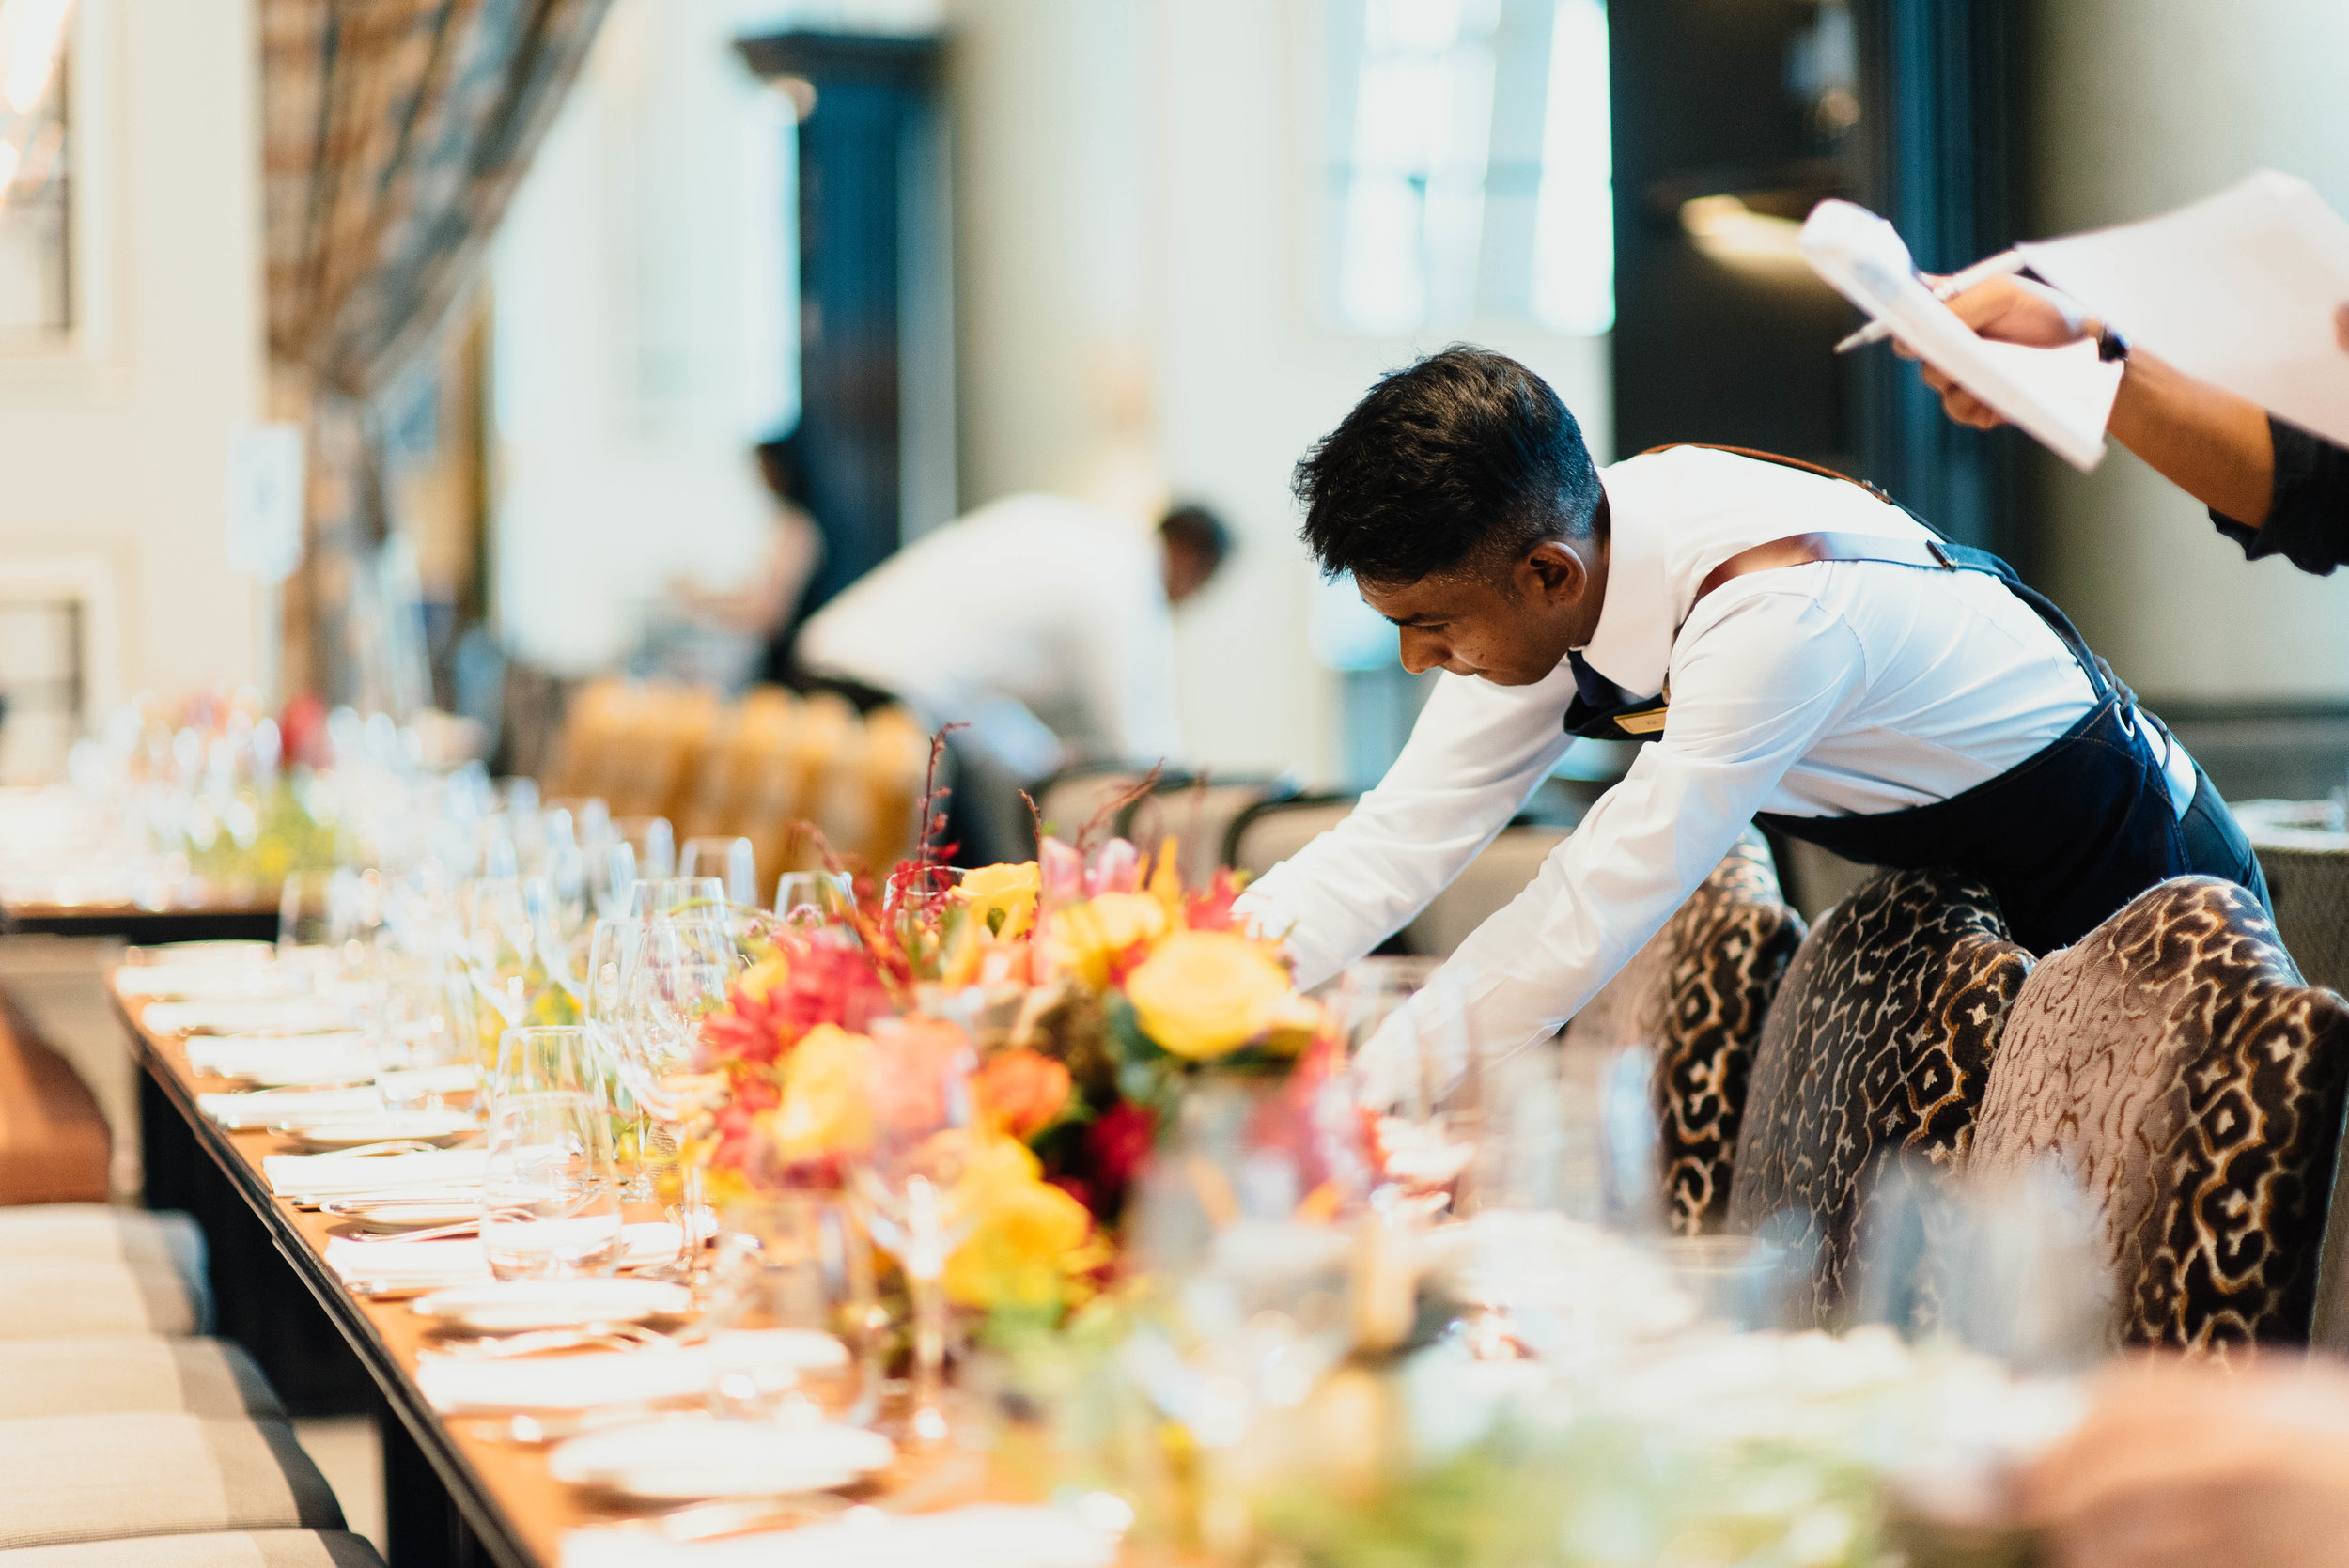 waiter fixing place setting at a banquet table